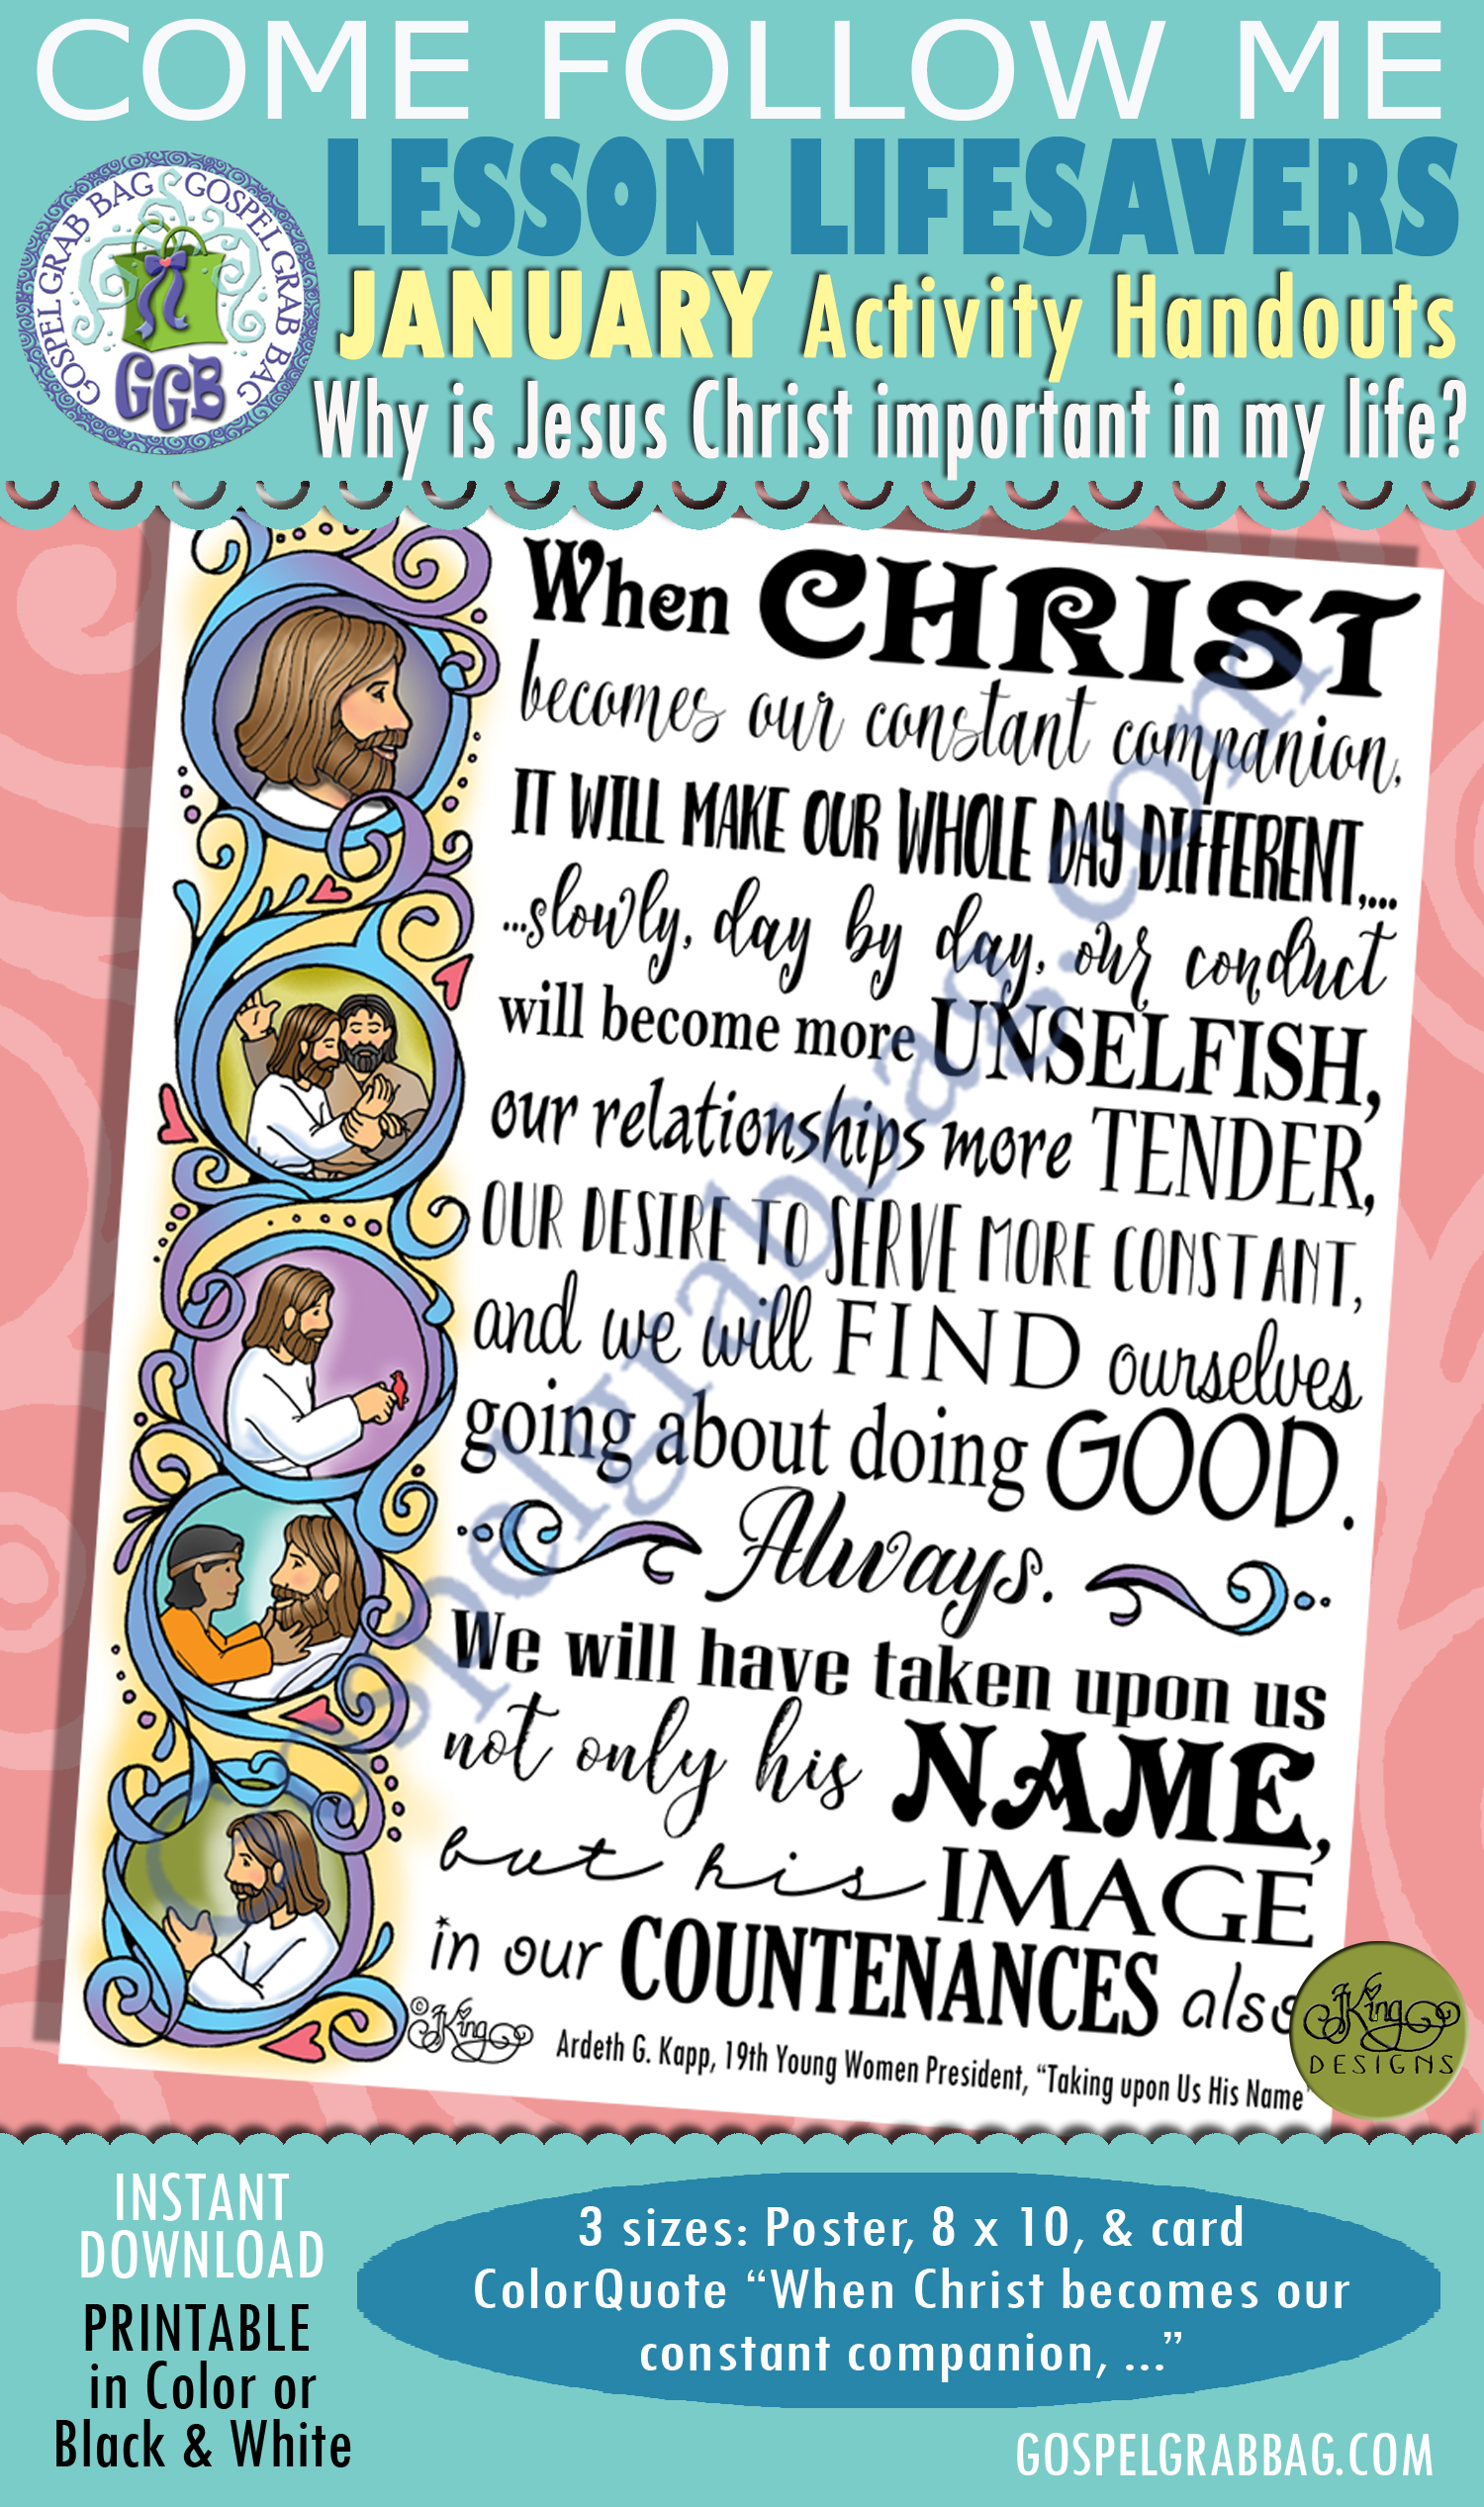 """$2.00 January Lesson 3 - Come Follow Me """"Why is Jesus Christ important in my life?"""" ACTIVITY: COLOR QUOTE Kapp, """"When Christ becomes our constant companion ..."""""""